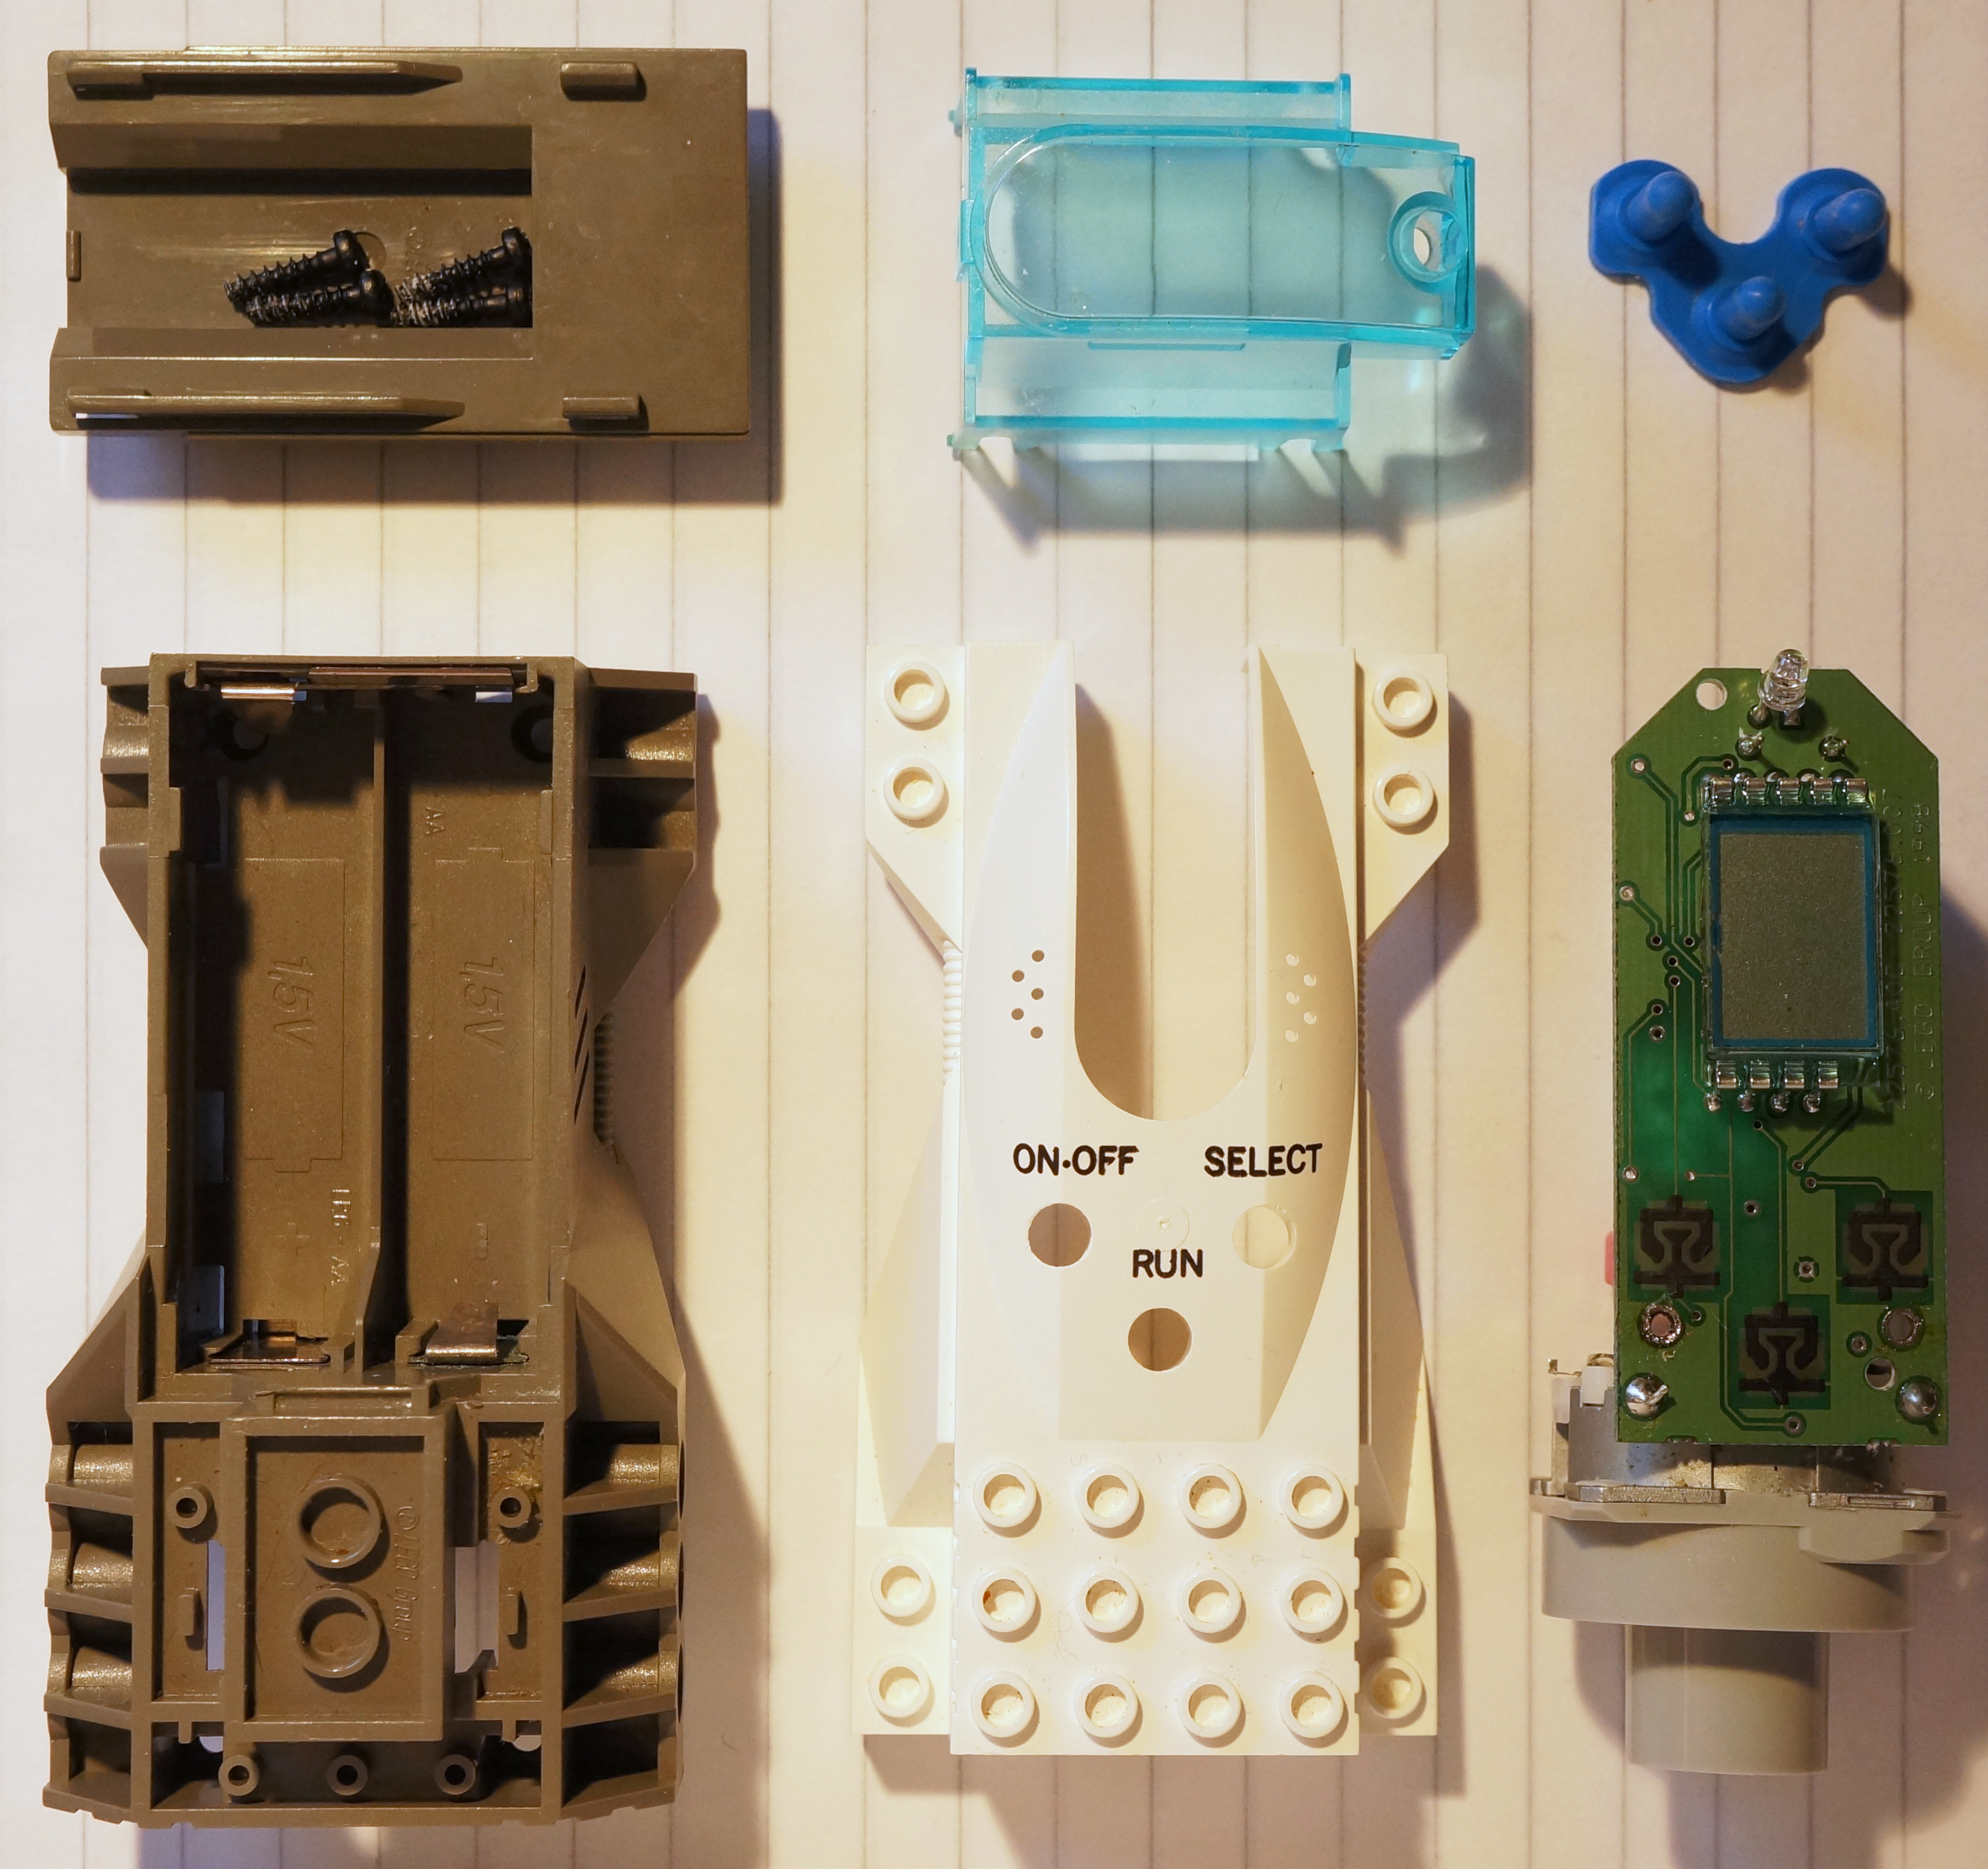 feather_microscout-disassembled-all-hires.jpg